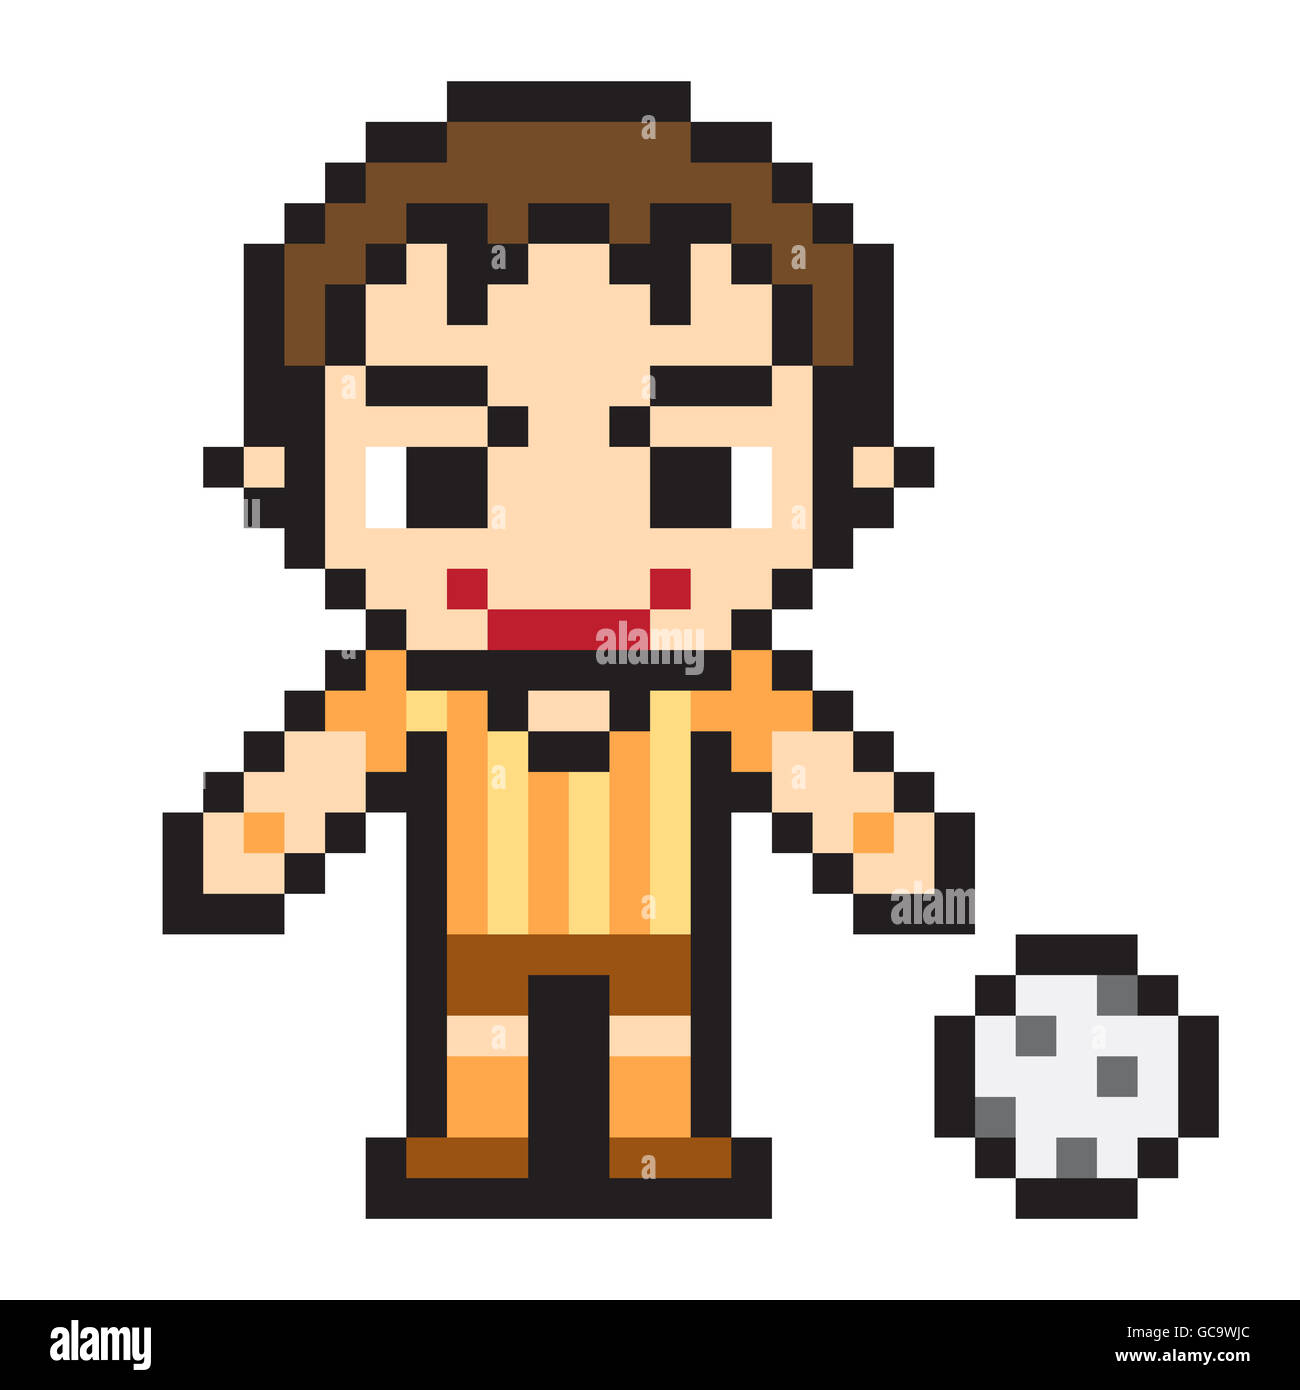 Illustration Design Pixel Art Soccer Stock Photo 110855764